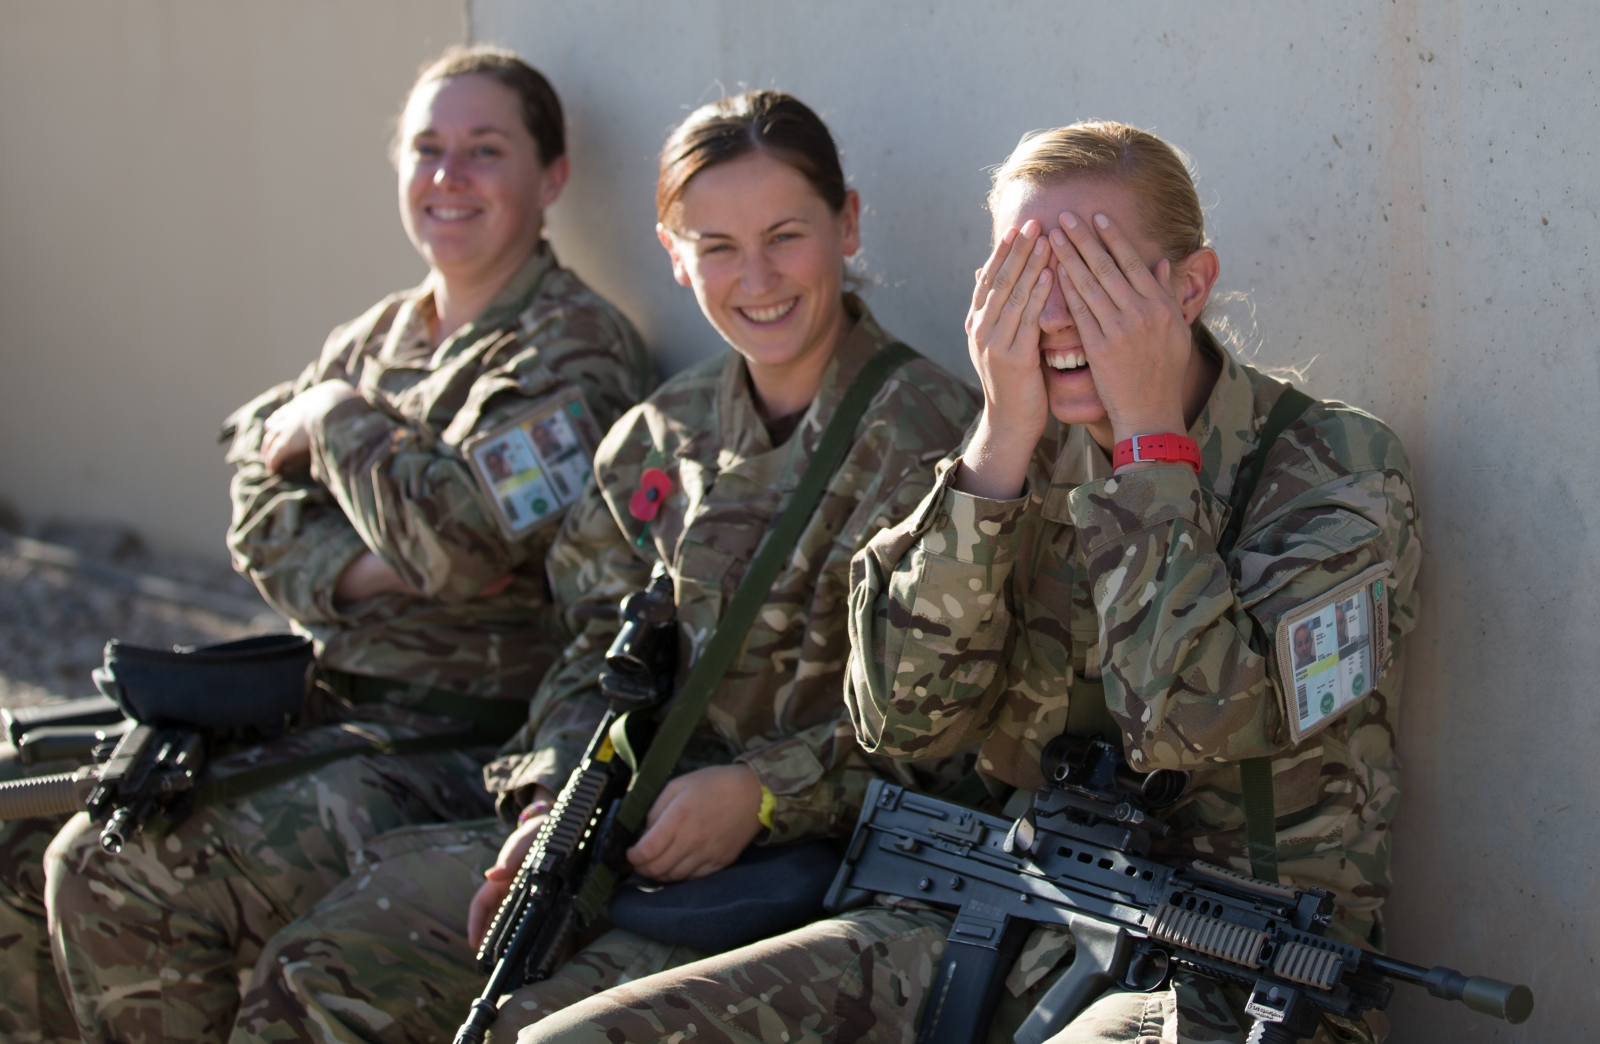 Britain's female soldiers